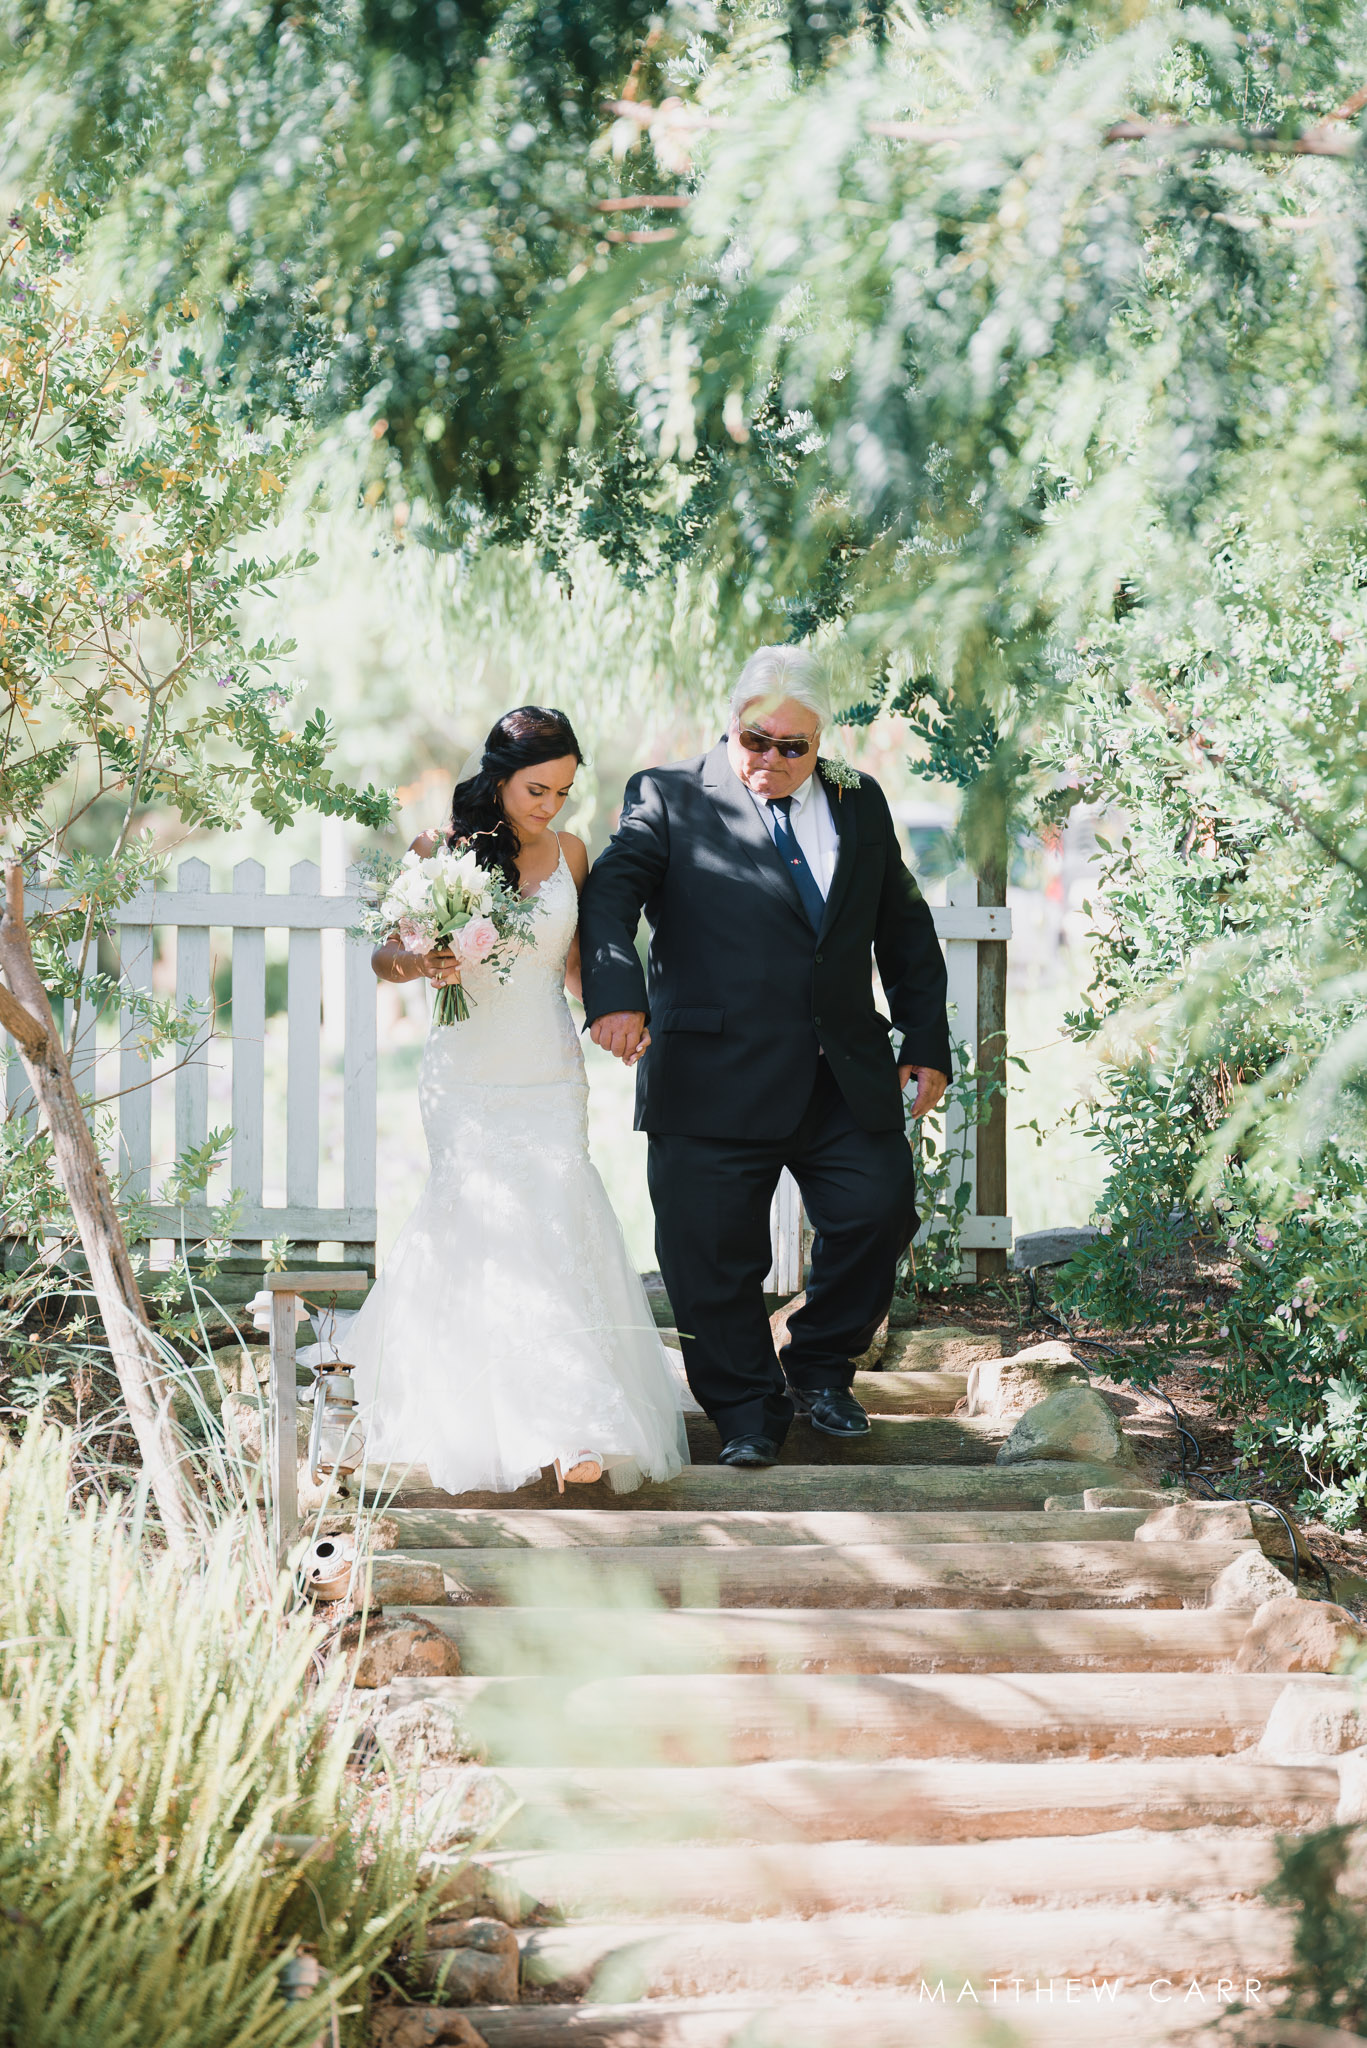 ceremony & after - low res (viewing, social media) (15 of 111).JPG